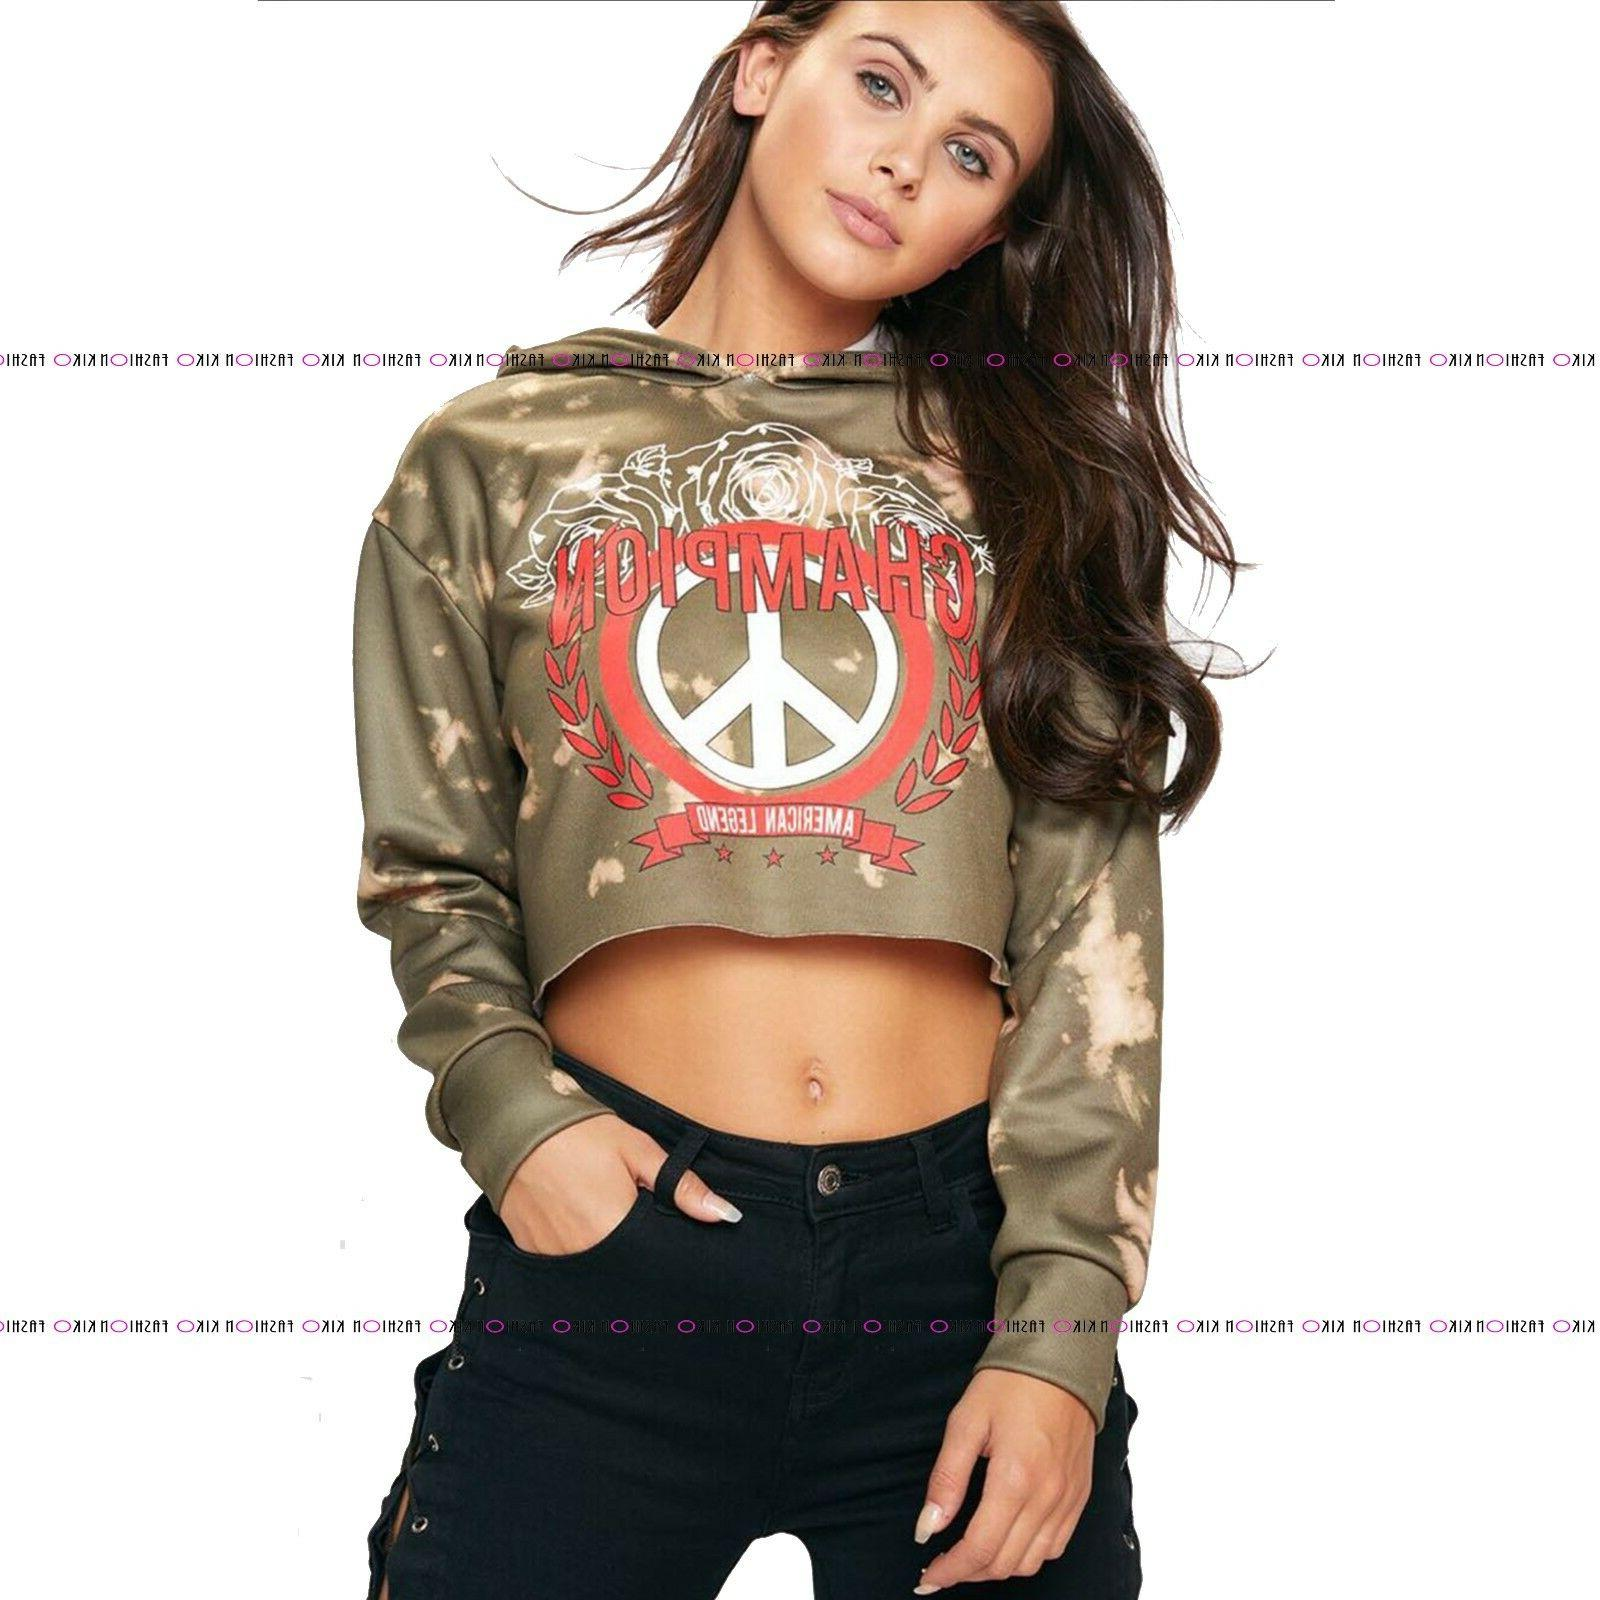 WOMENS LADIES ARMY CAMOUFLAGE HOODED STAR CHAMPION CROP TOP